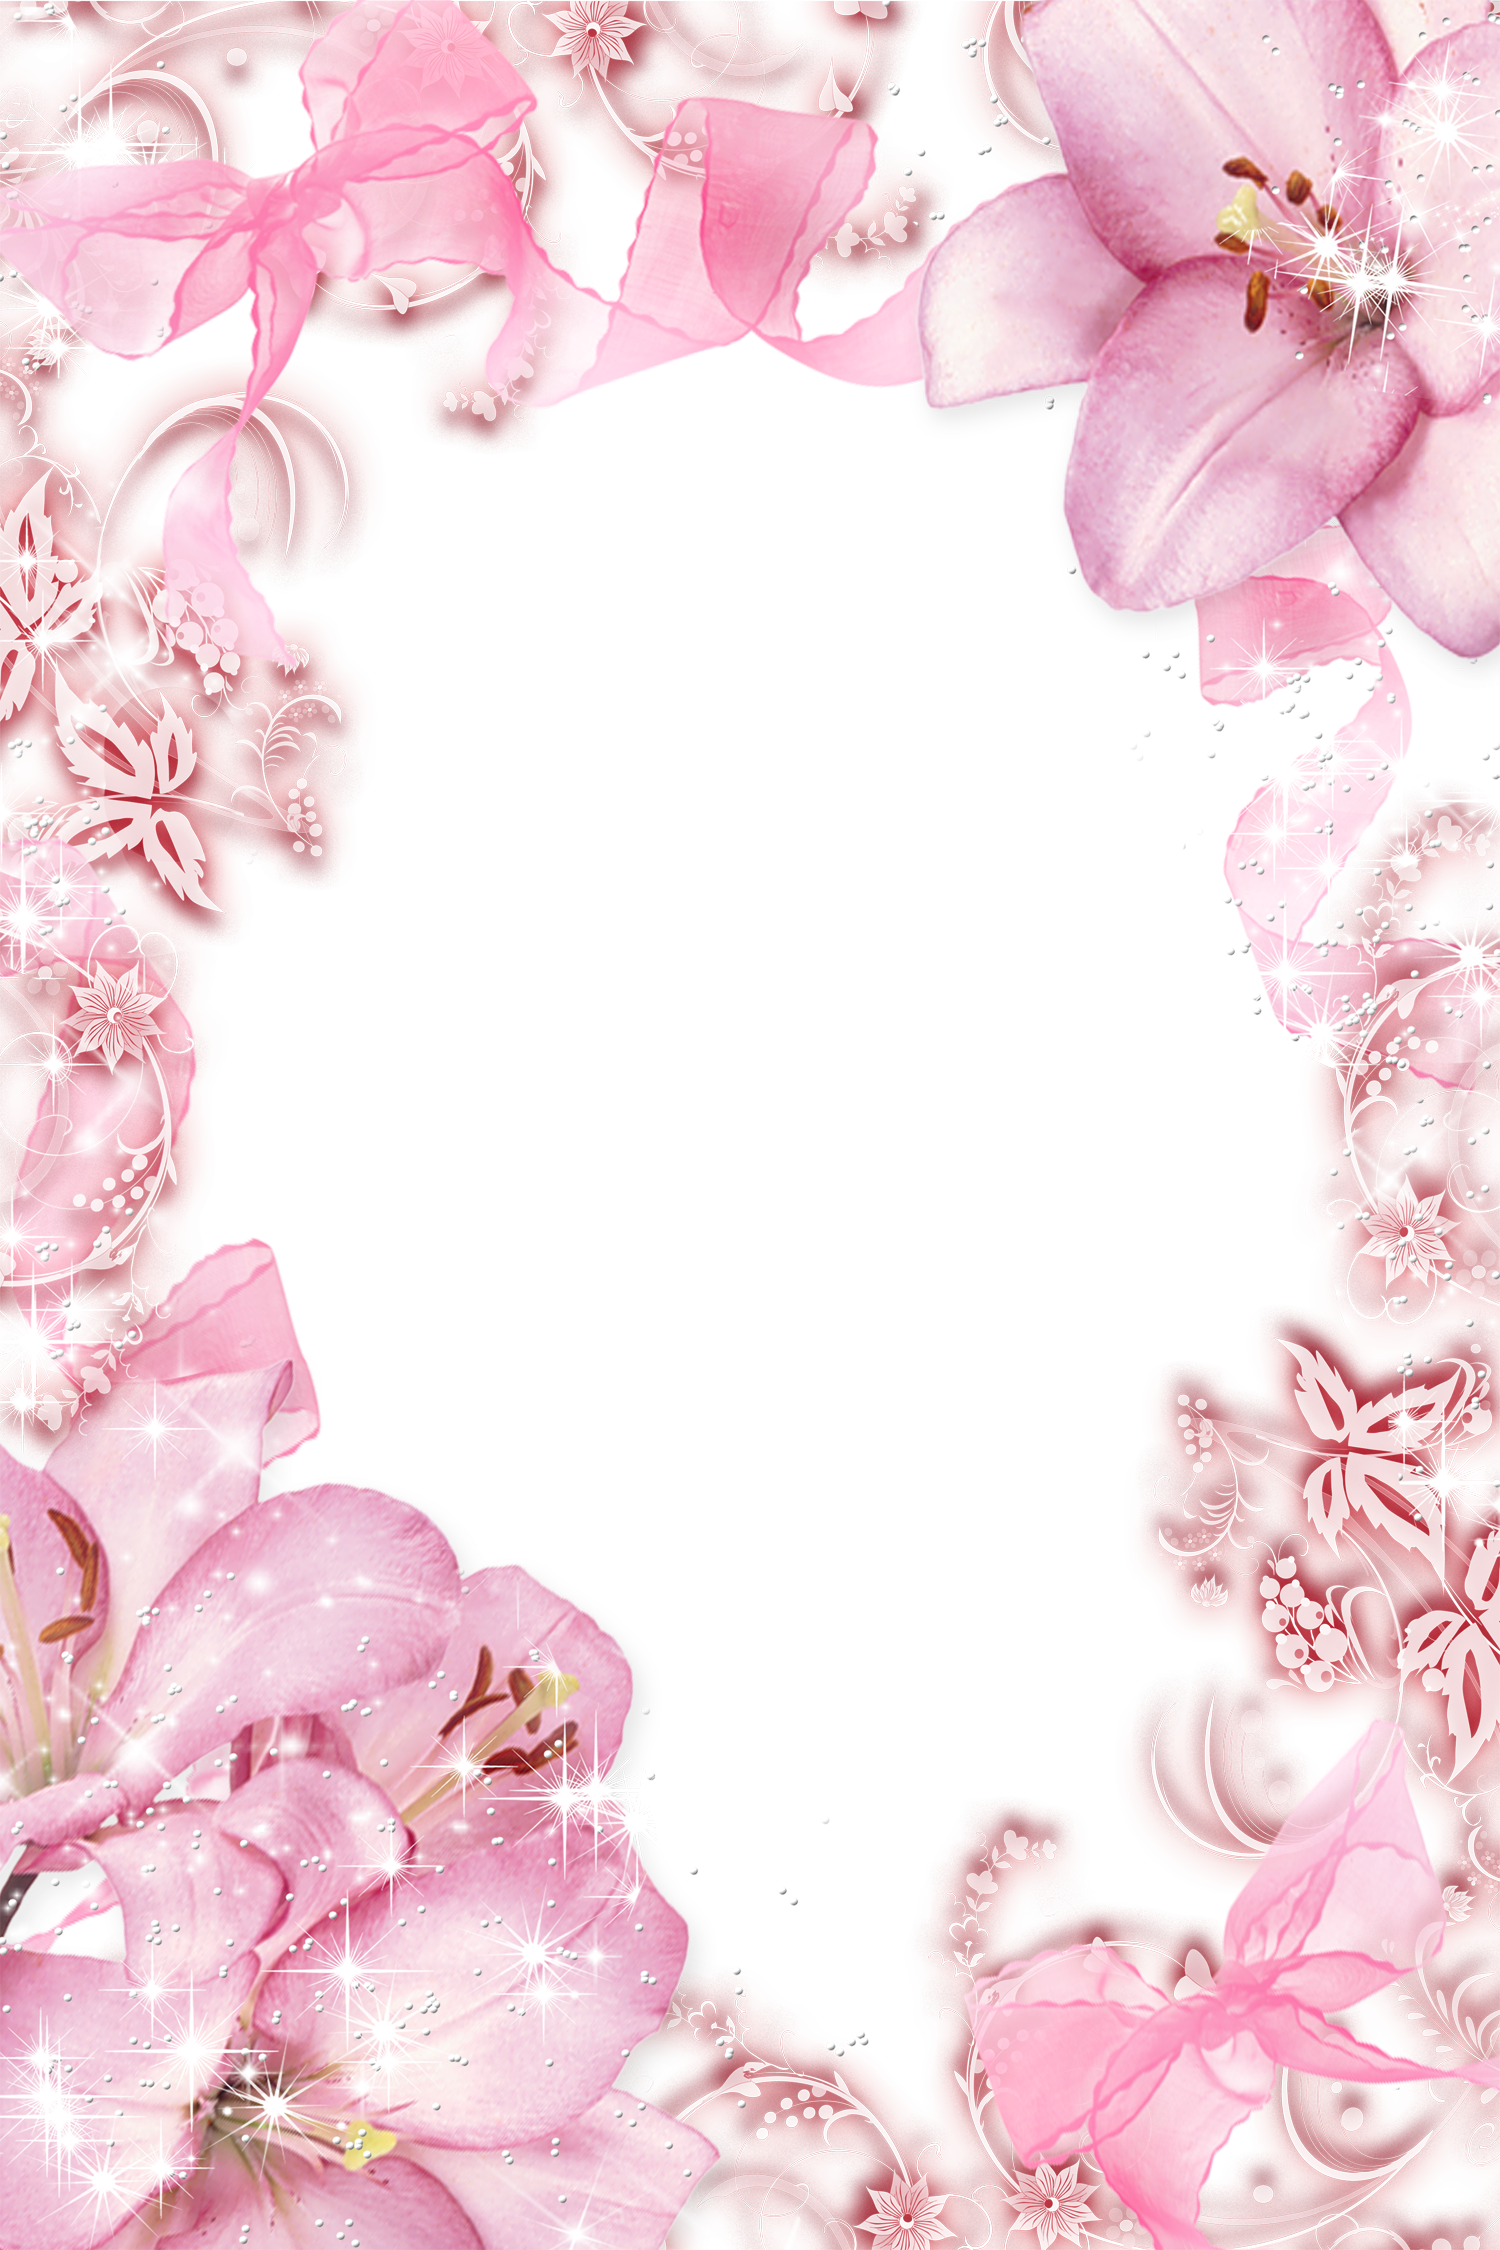 Pink flowers border png. Transparent photo frame wallpapers